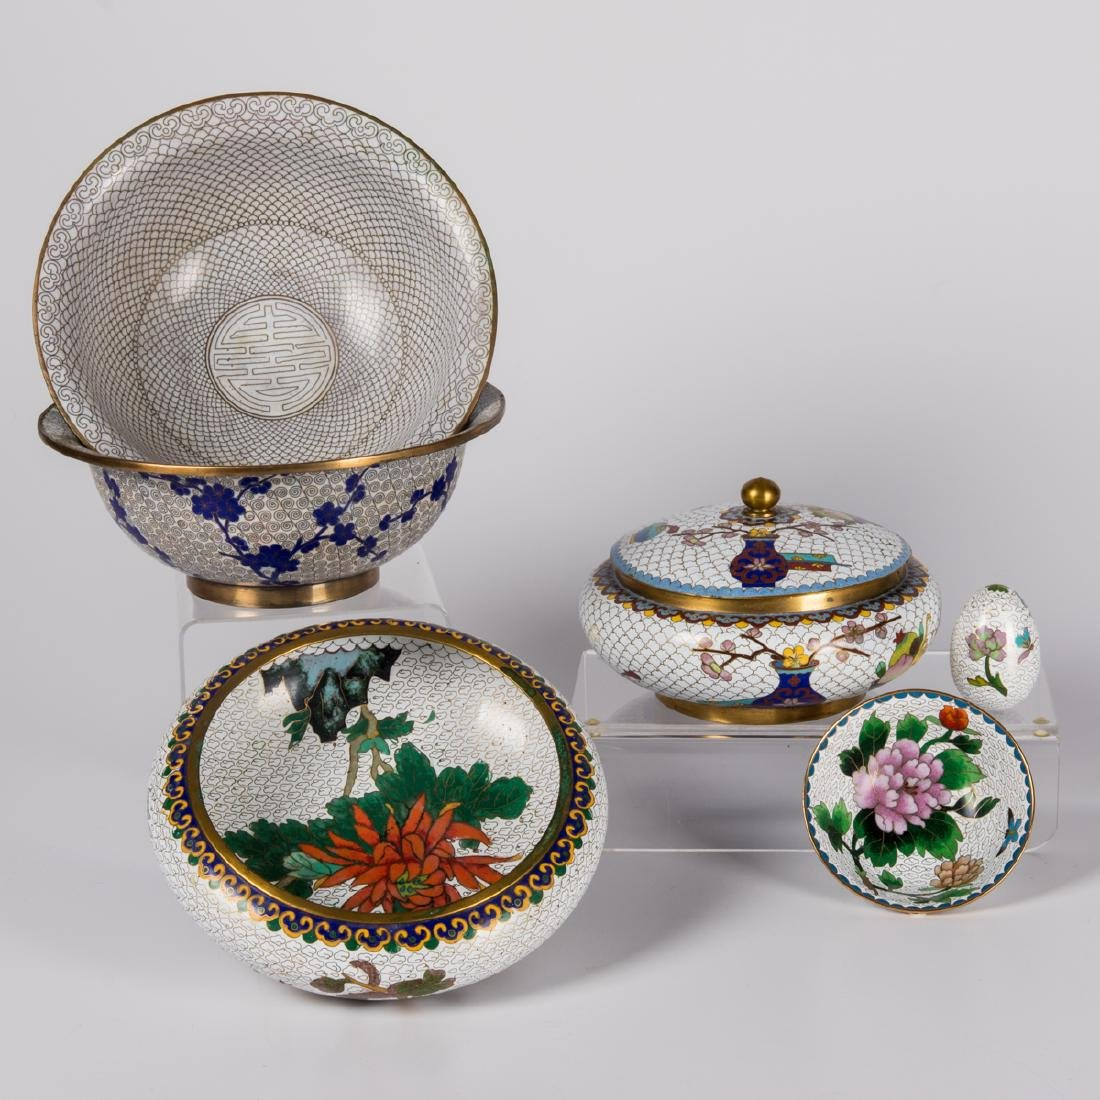 A Group of Six Chinese Cloisonné Serving and Decorative